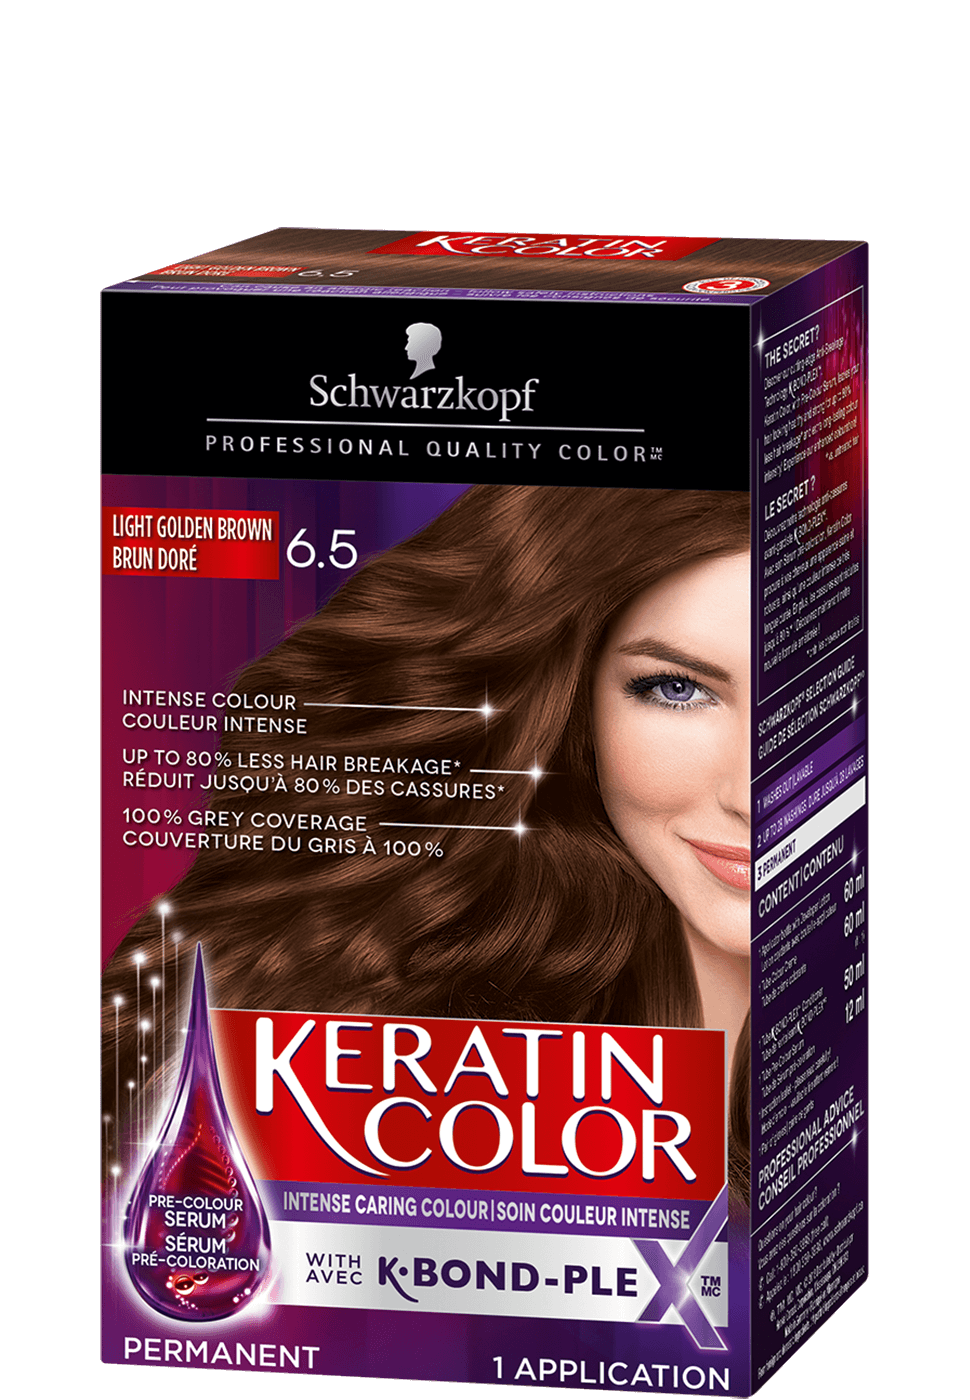 Keratin_Color_ca_6_5_970x1400